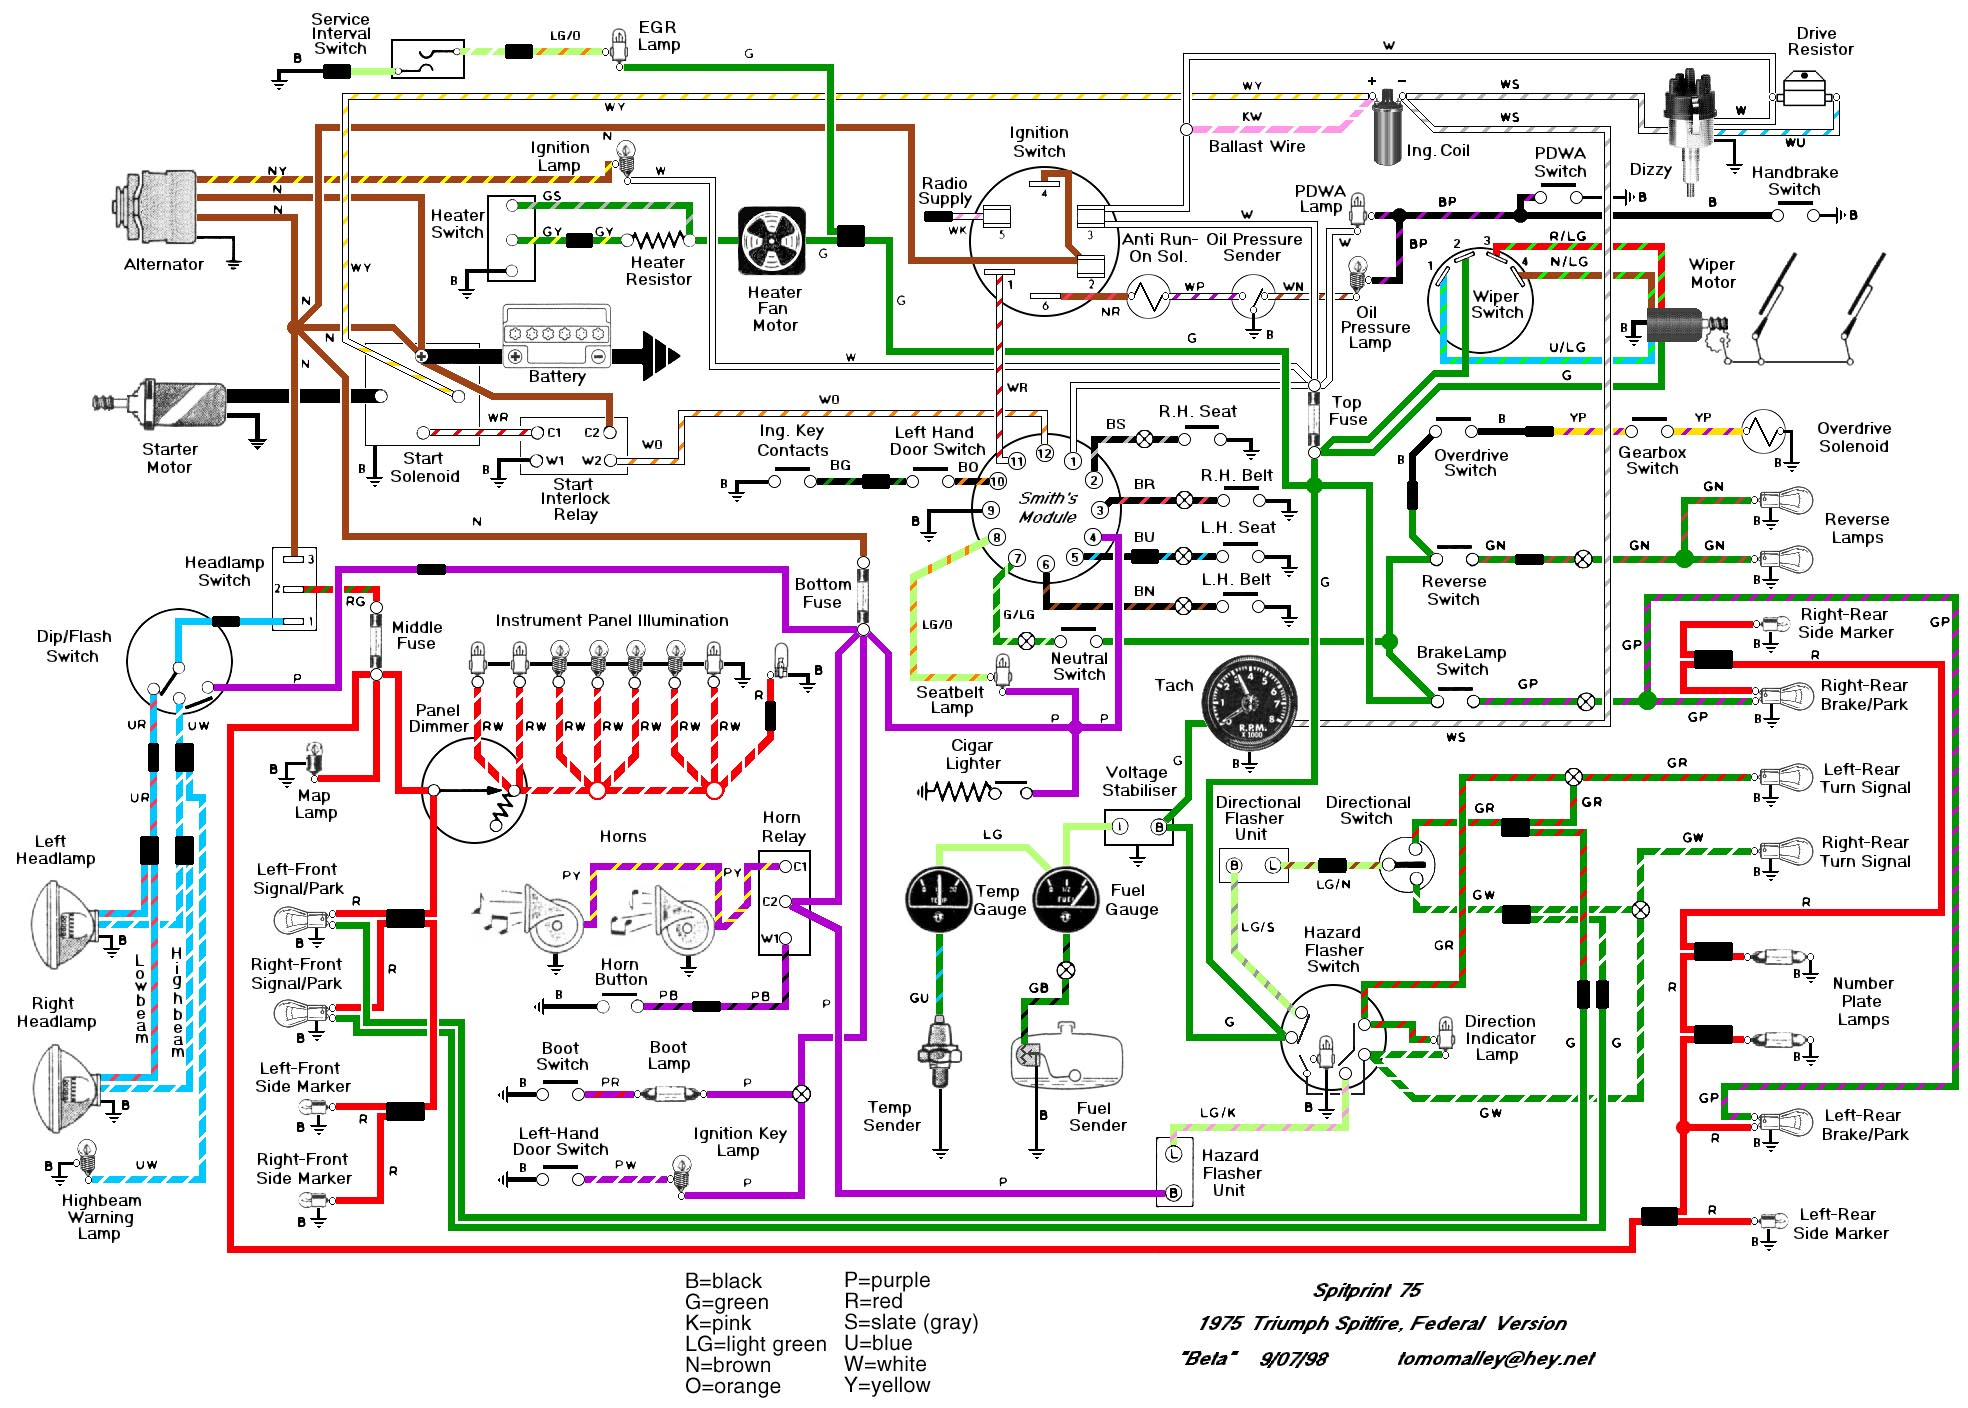 car wiring diagrams wiring diagram library Automotive Wiring Harness Diagrams car wiring diagrams wiring diagrams source car wiring diagrams software car wiring diagrams